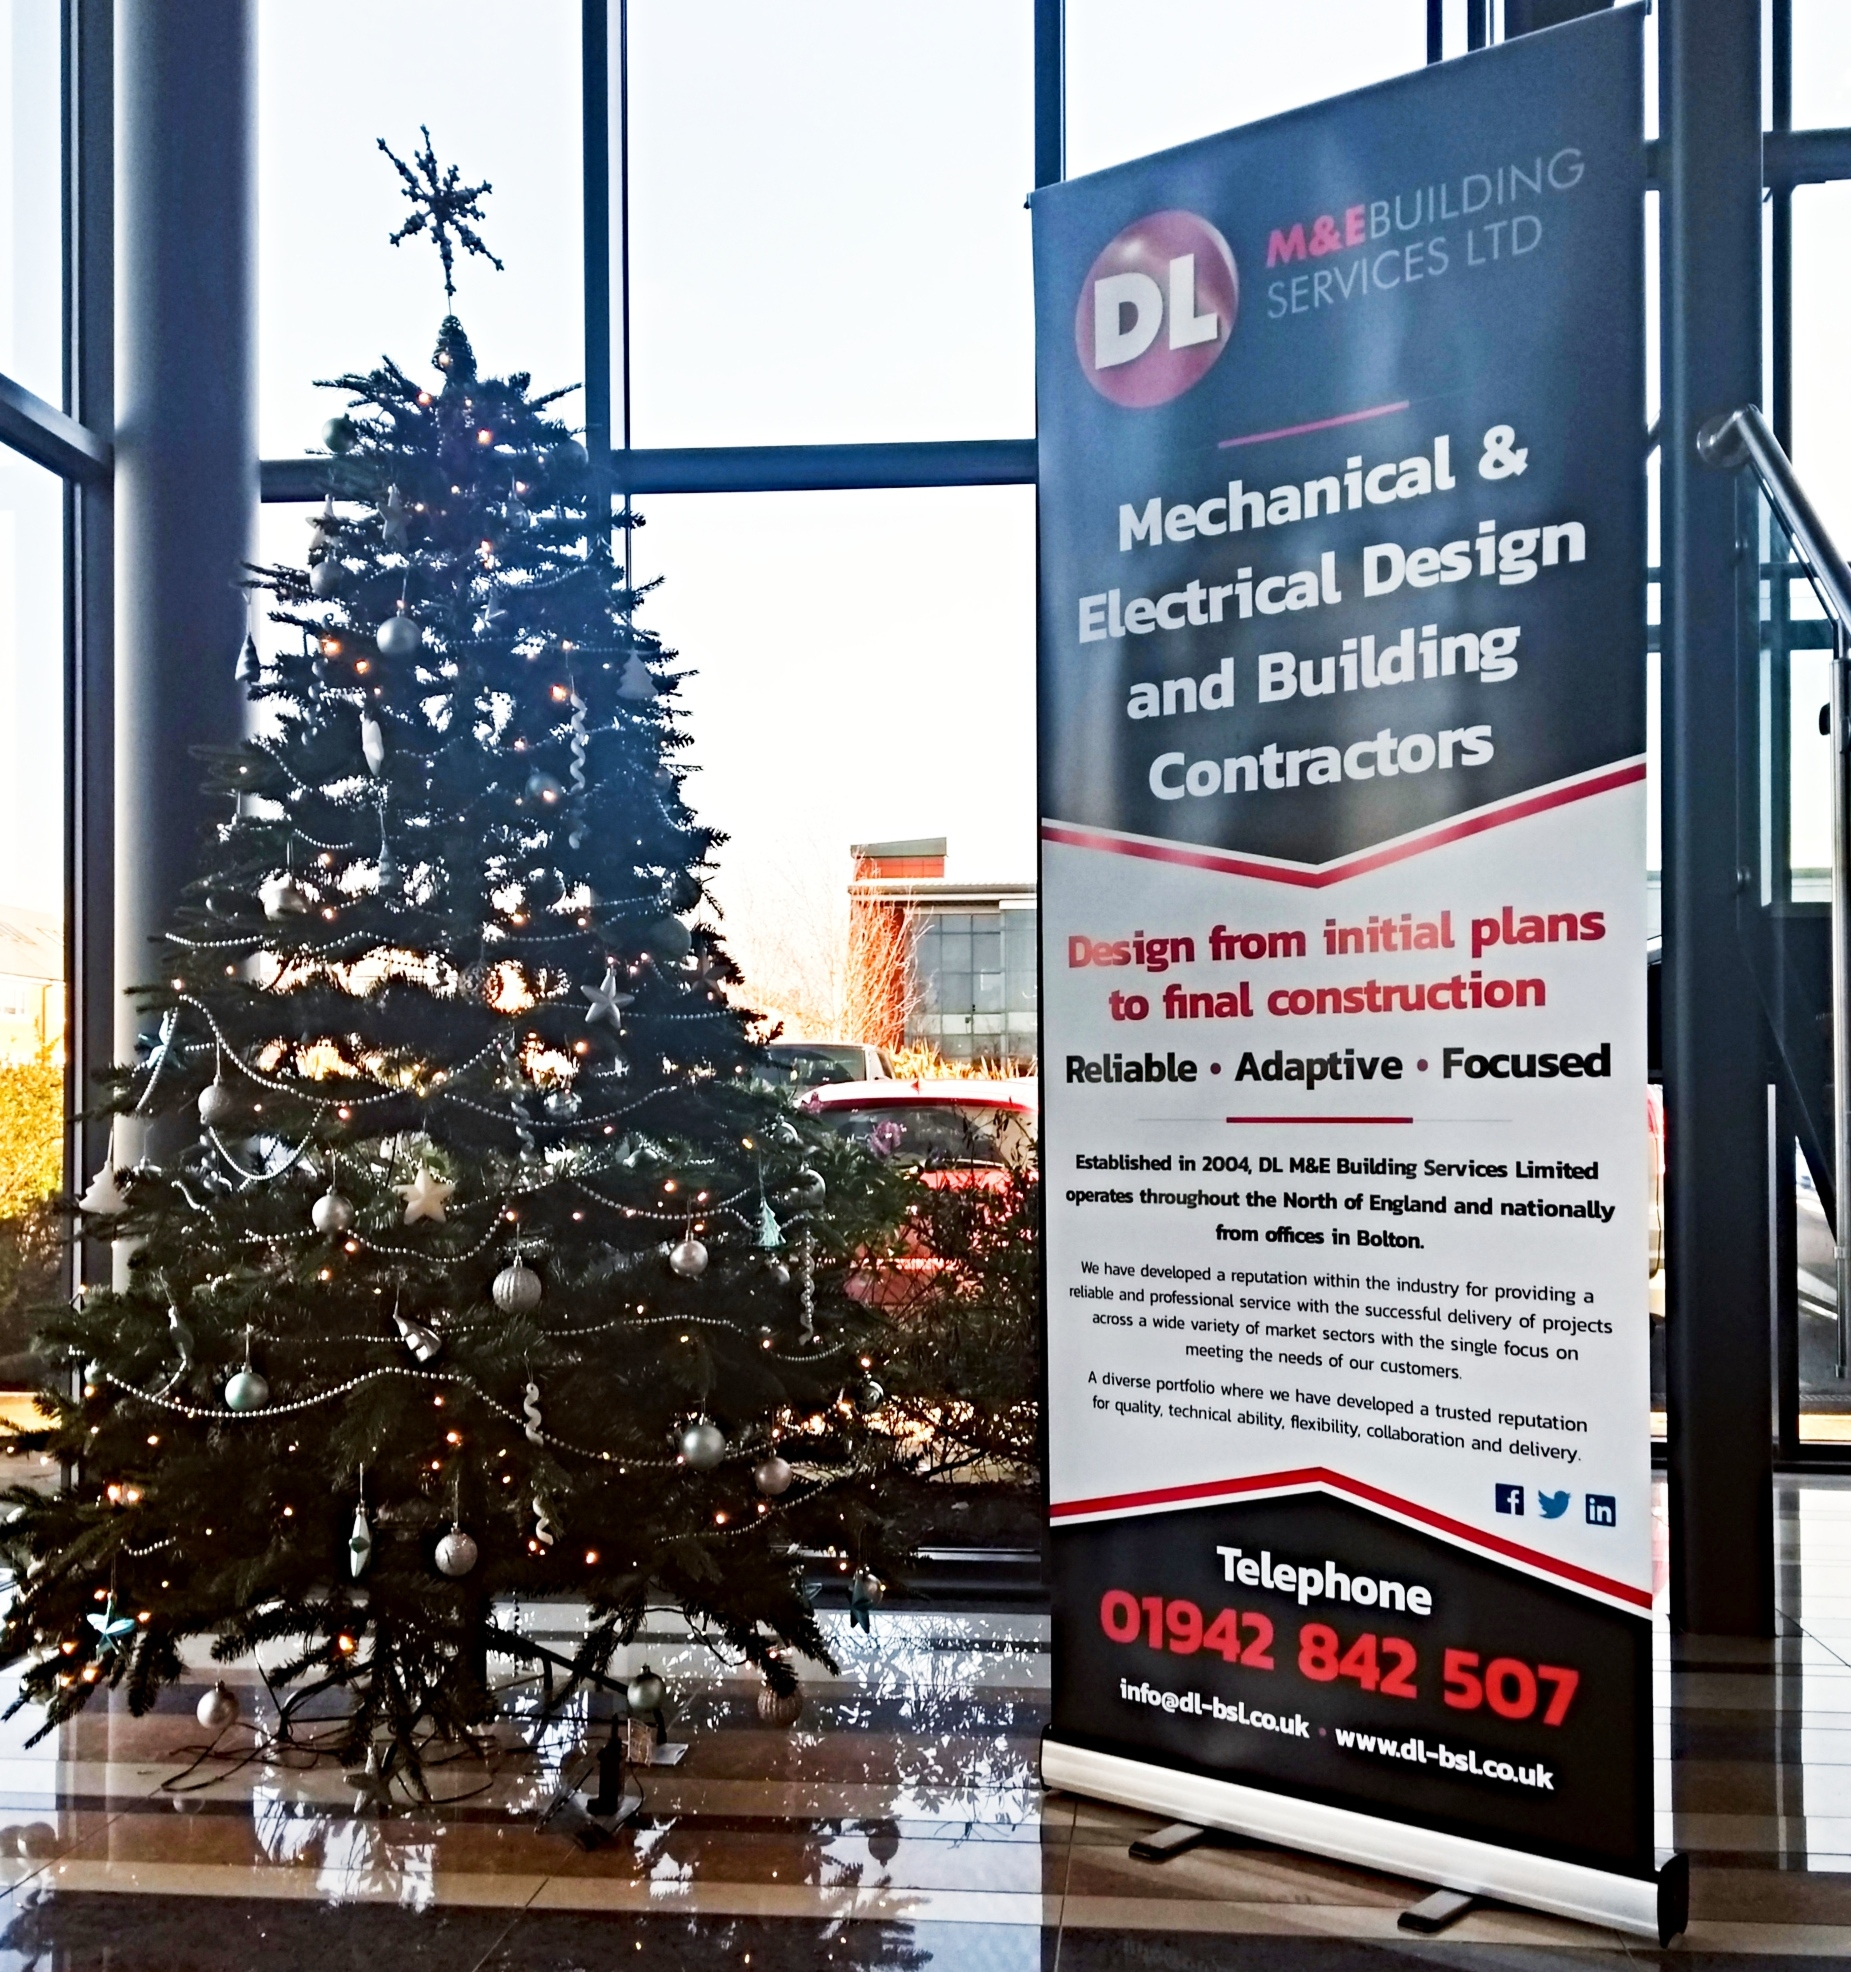 Constructing a Happy Christmas Morning with Cash For Kids - DL M&E Building Services